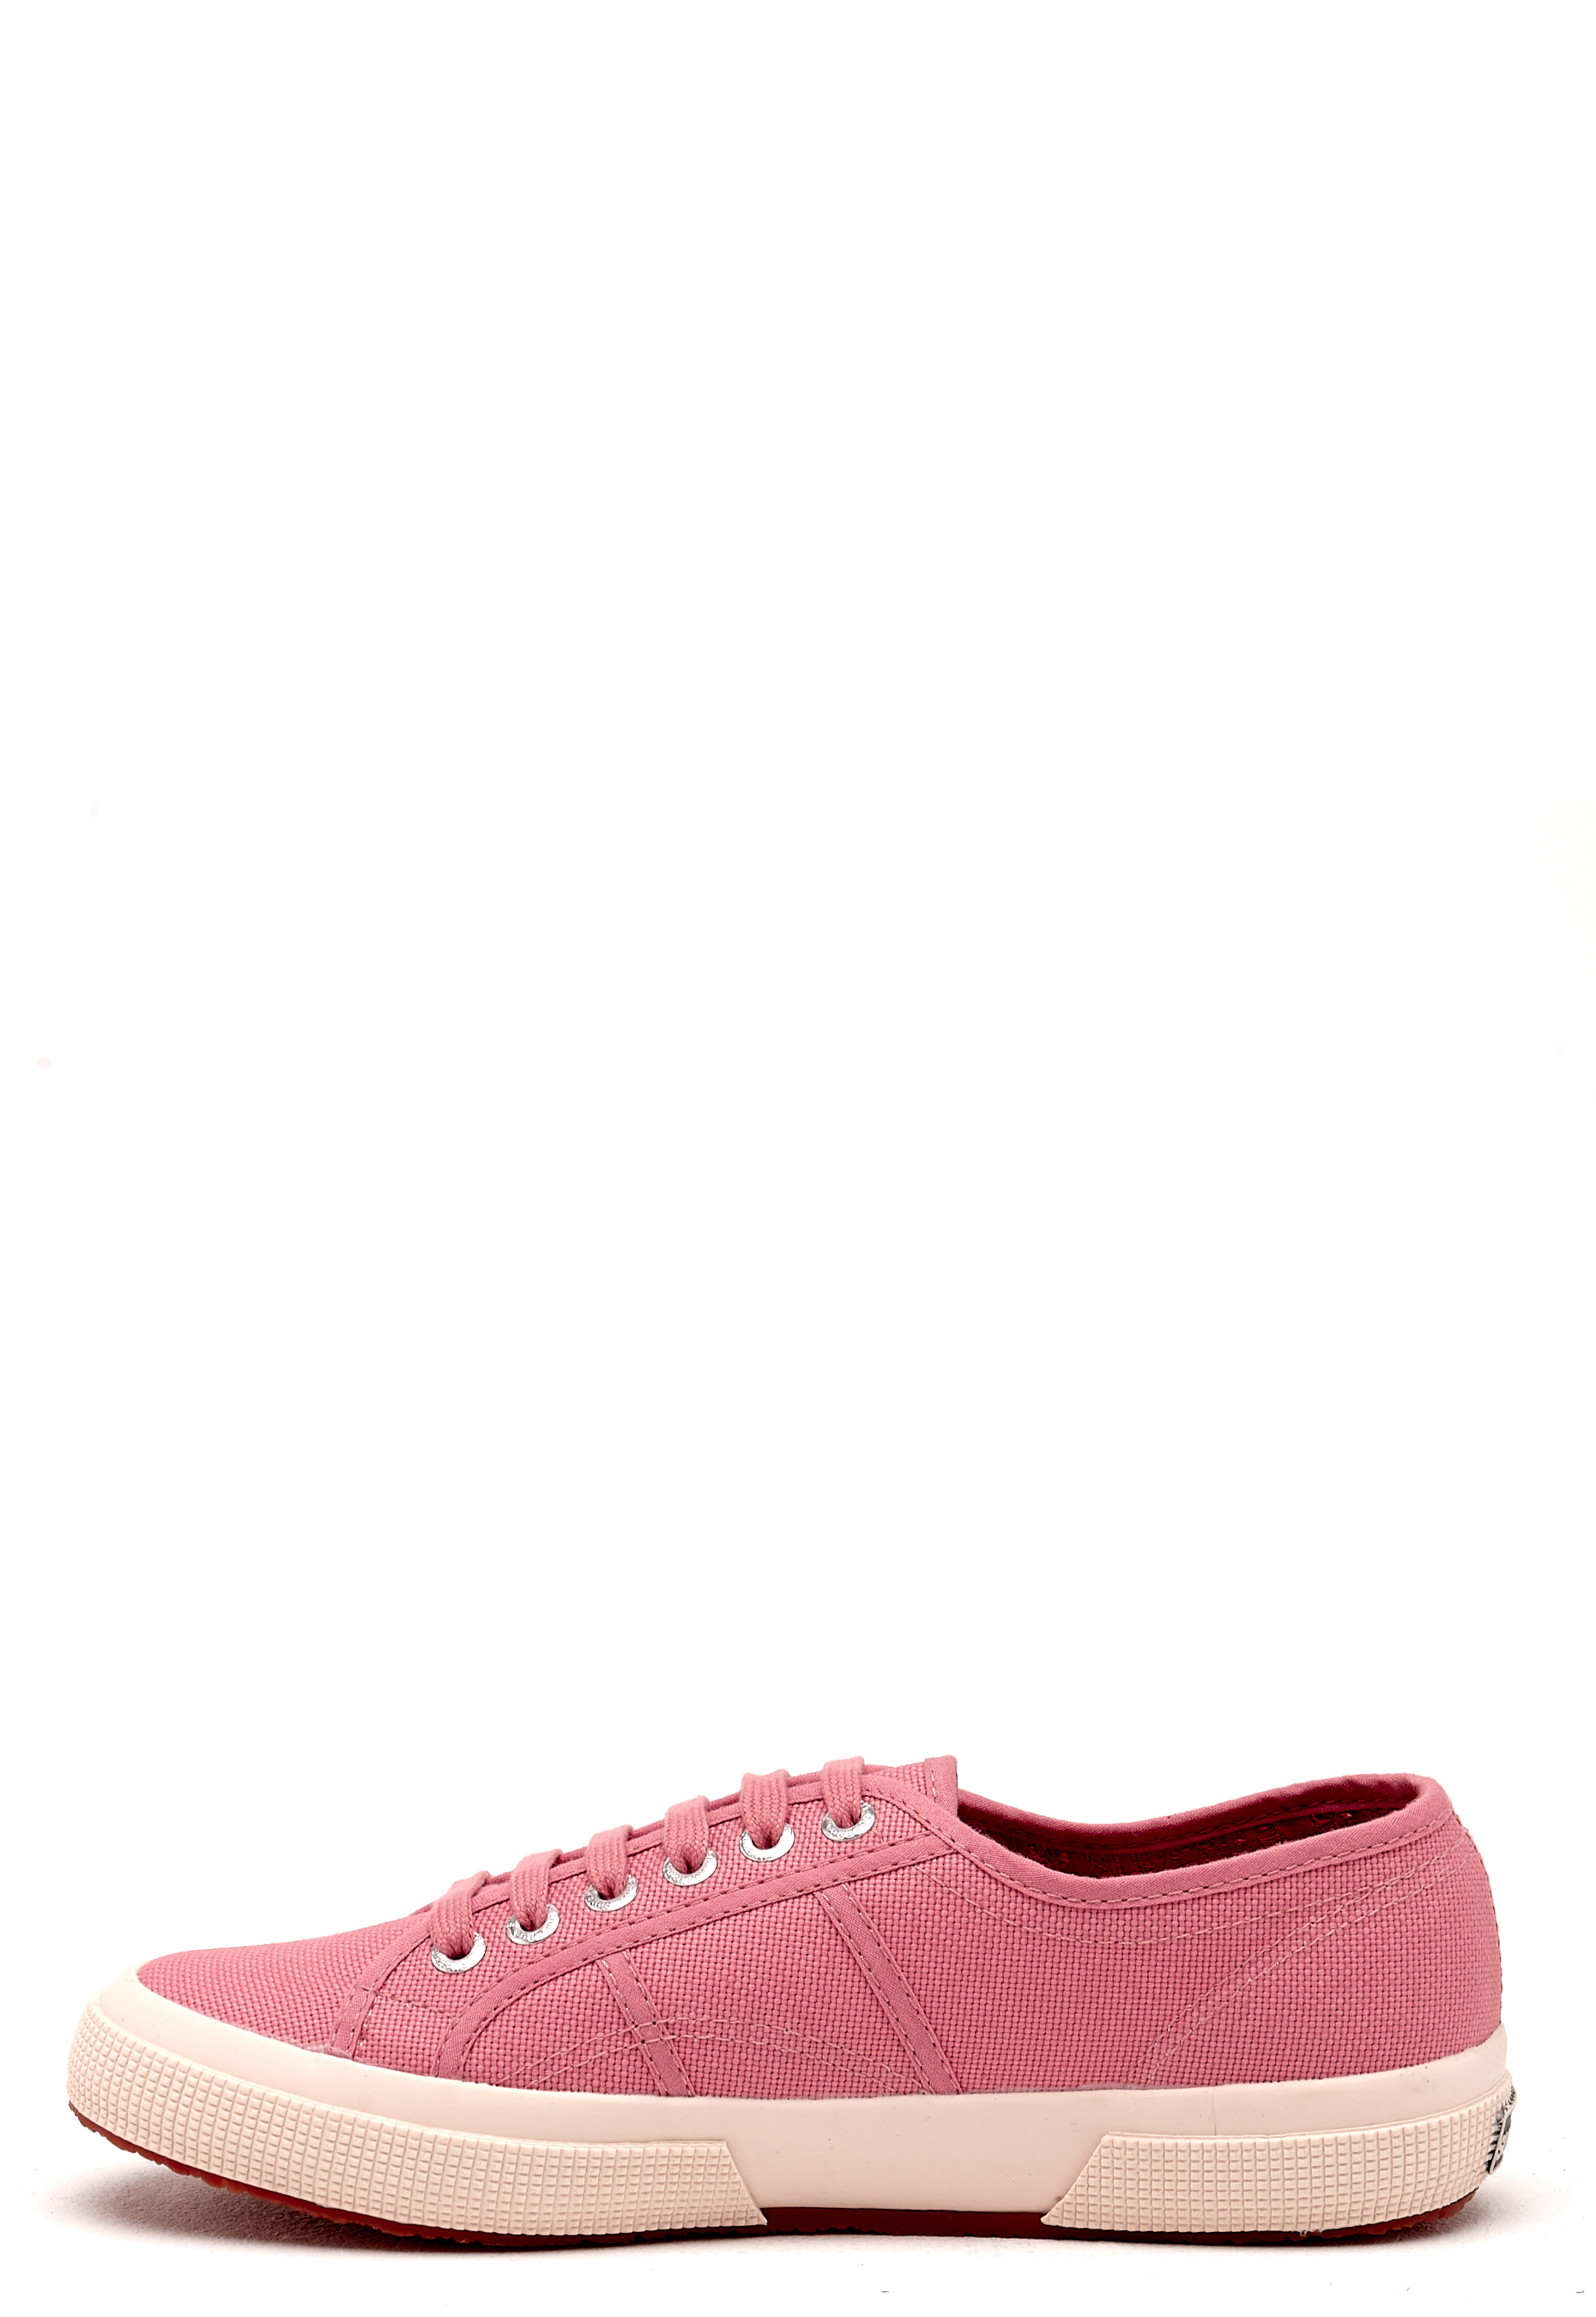 845843488ec Superga Cotu Classic Sneakers Dusty Rose - Bubbleroom